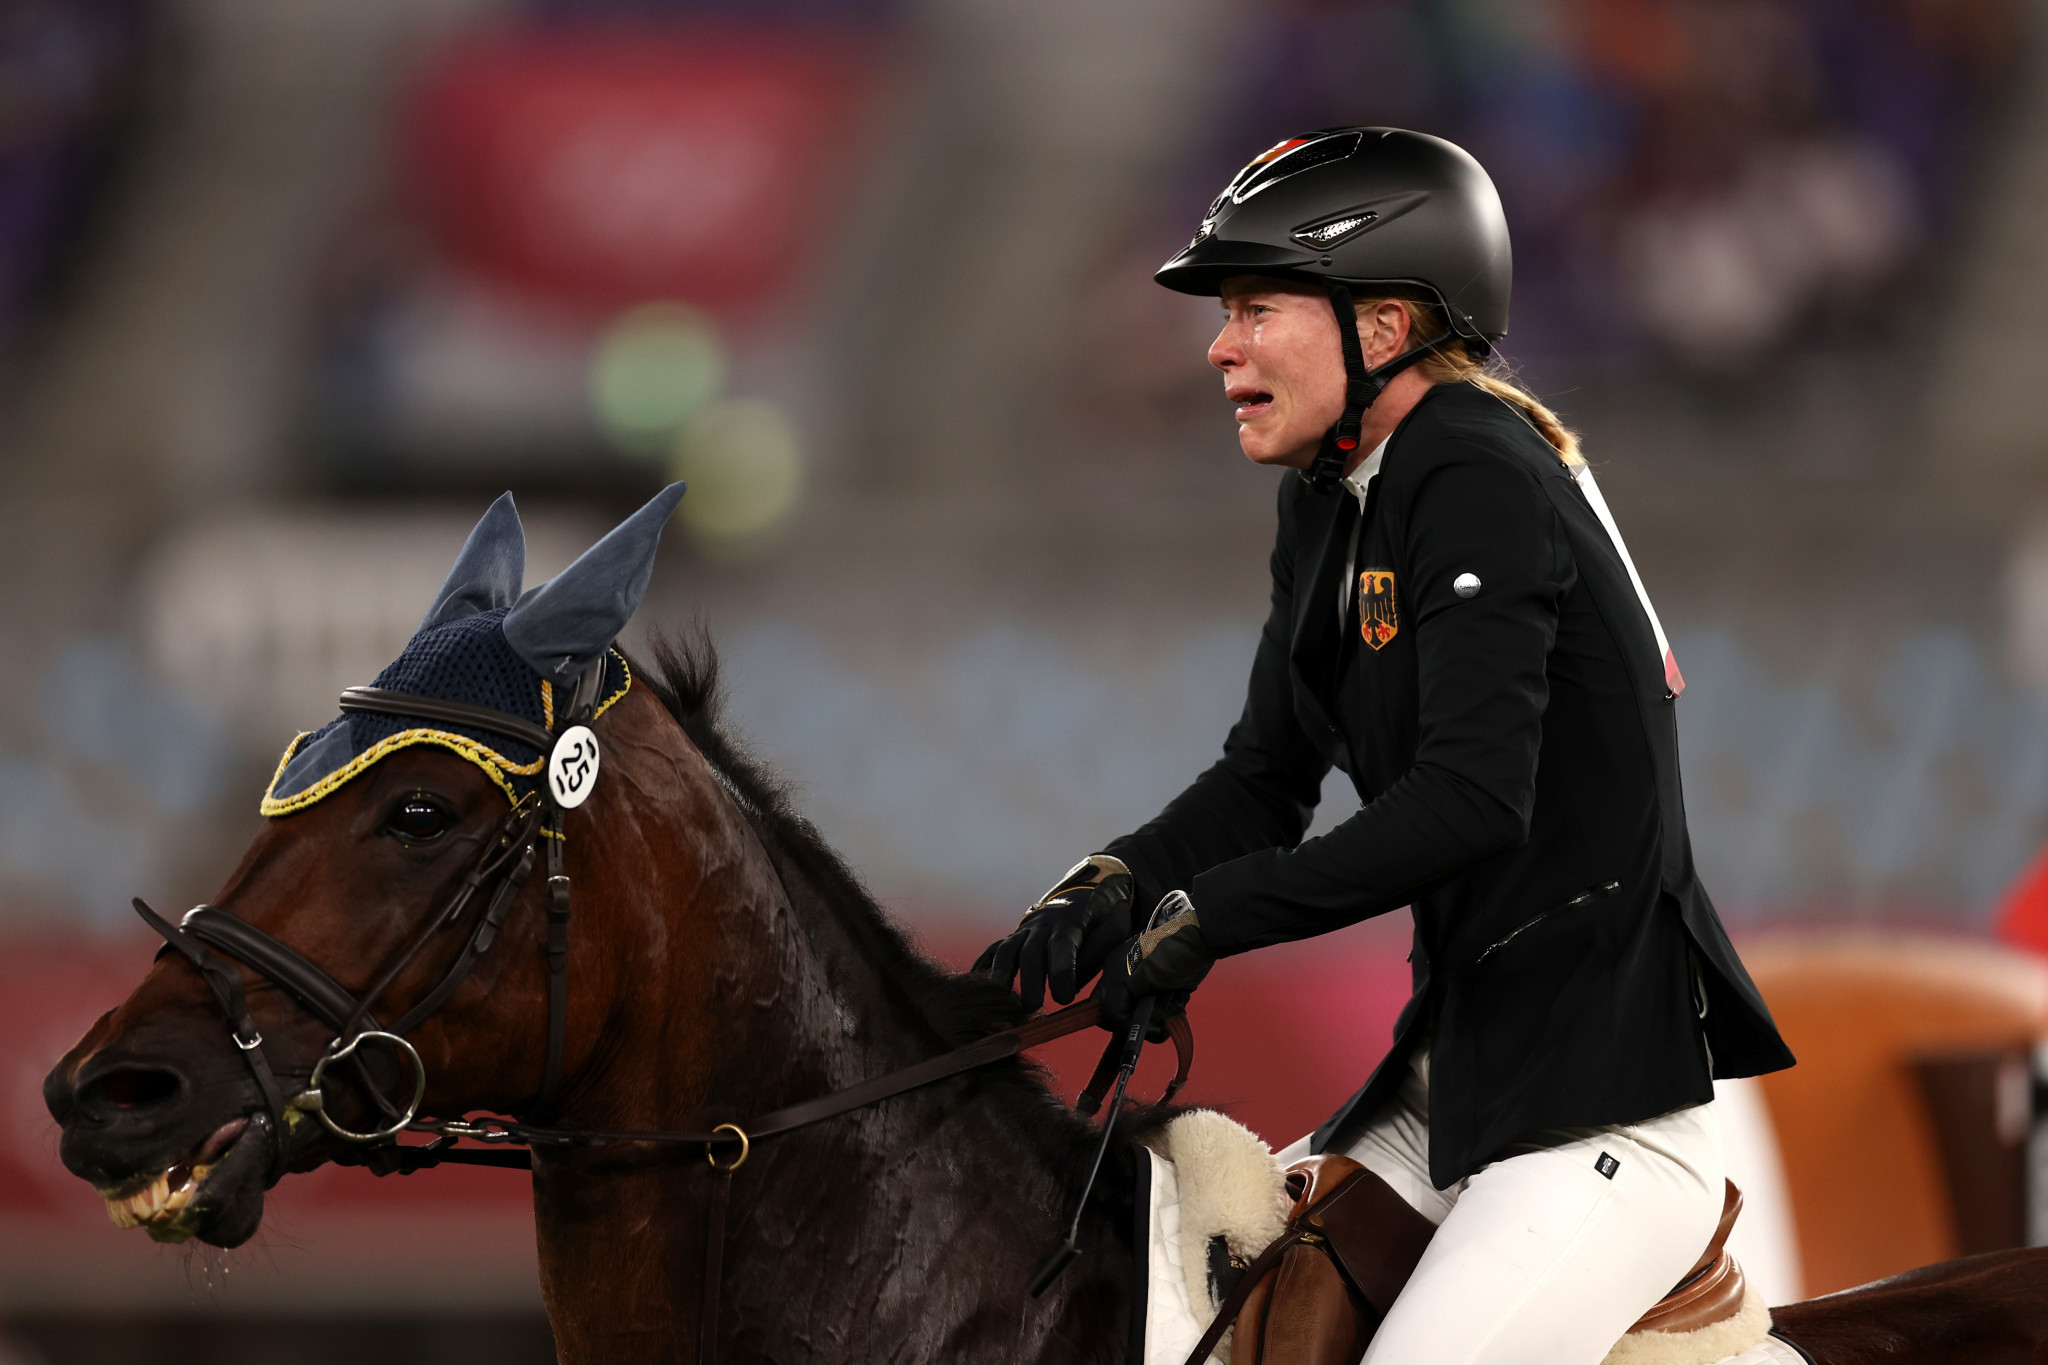 The UIPM has taken action following a horse-abuse scandal at the Olympics ©Getty Images